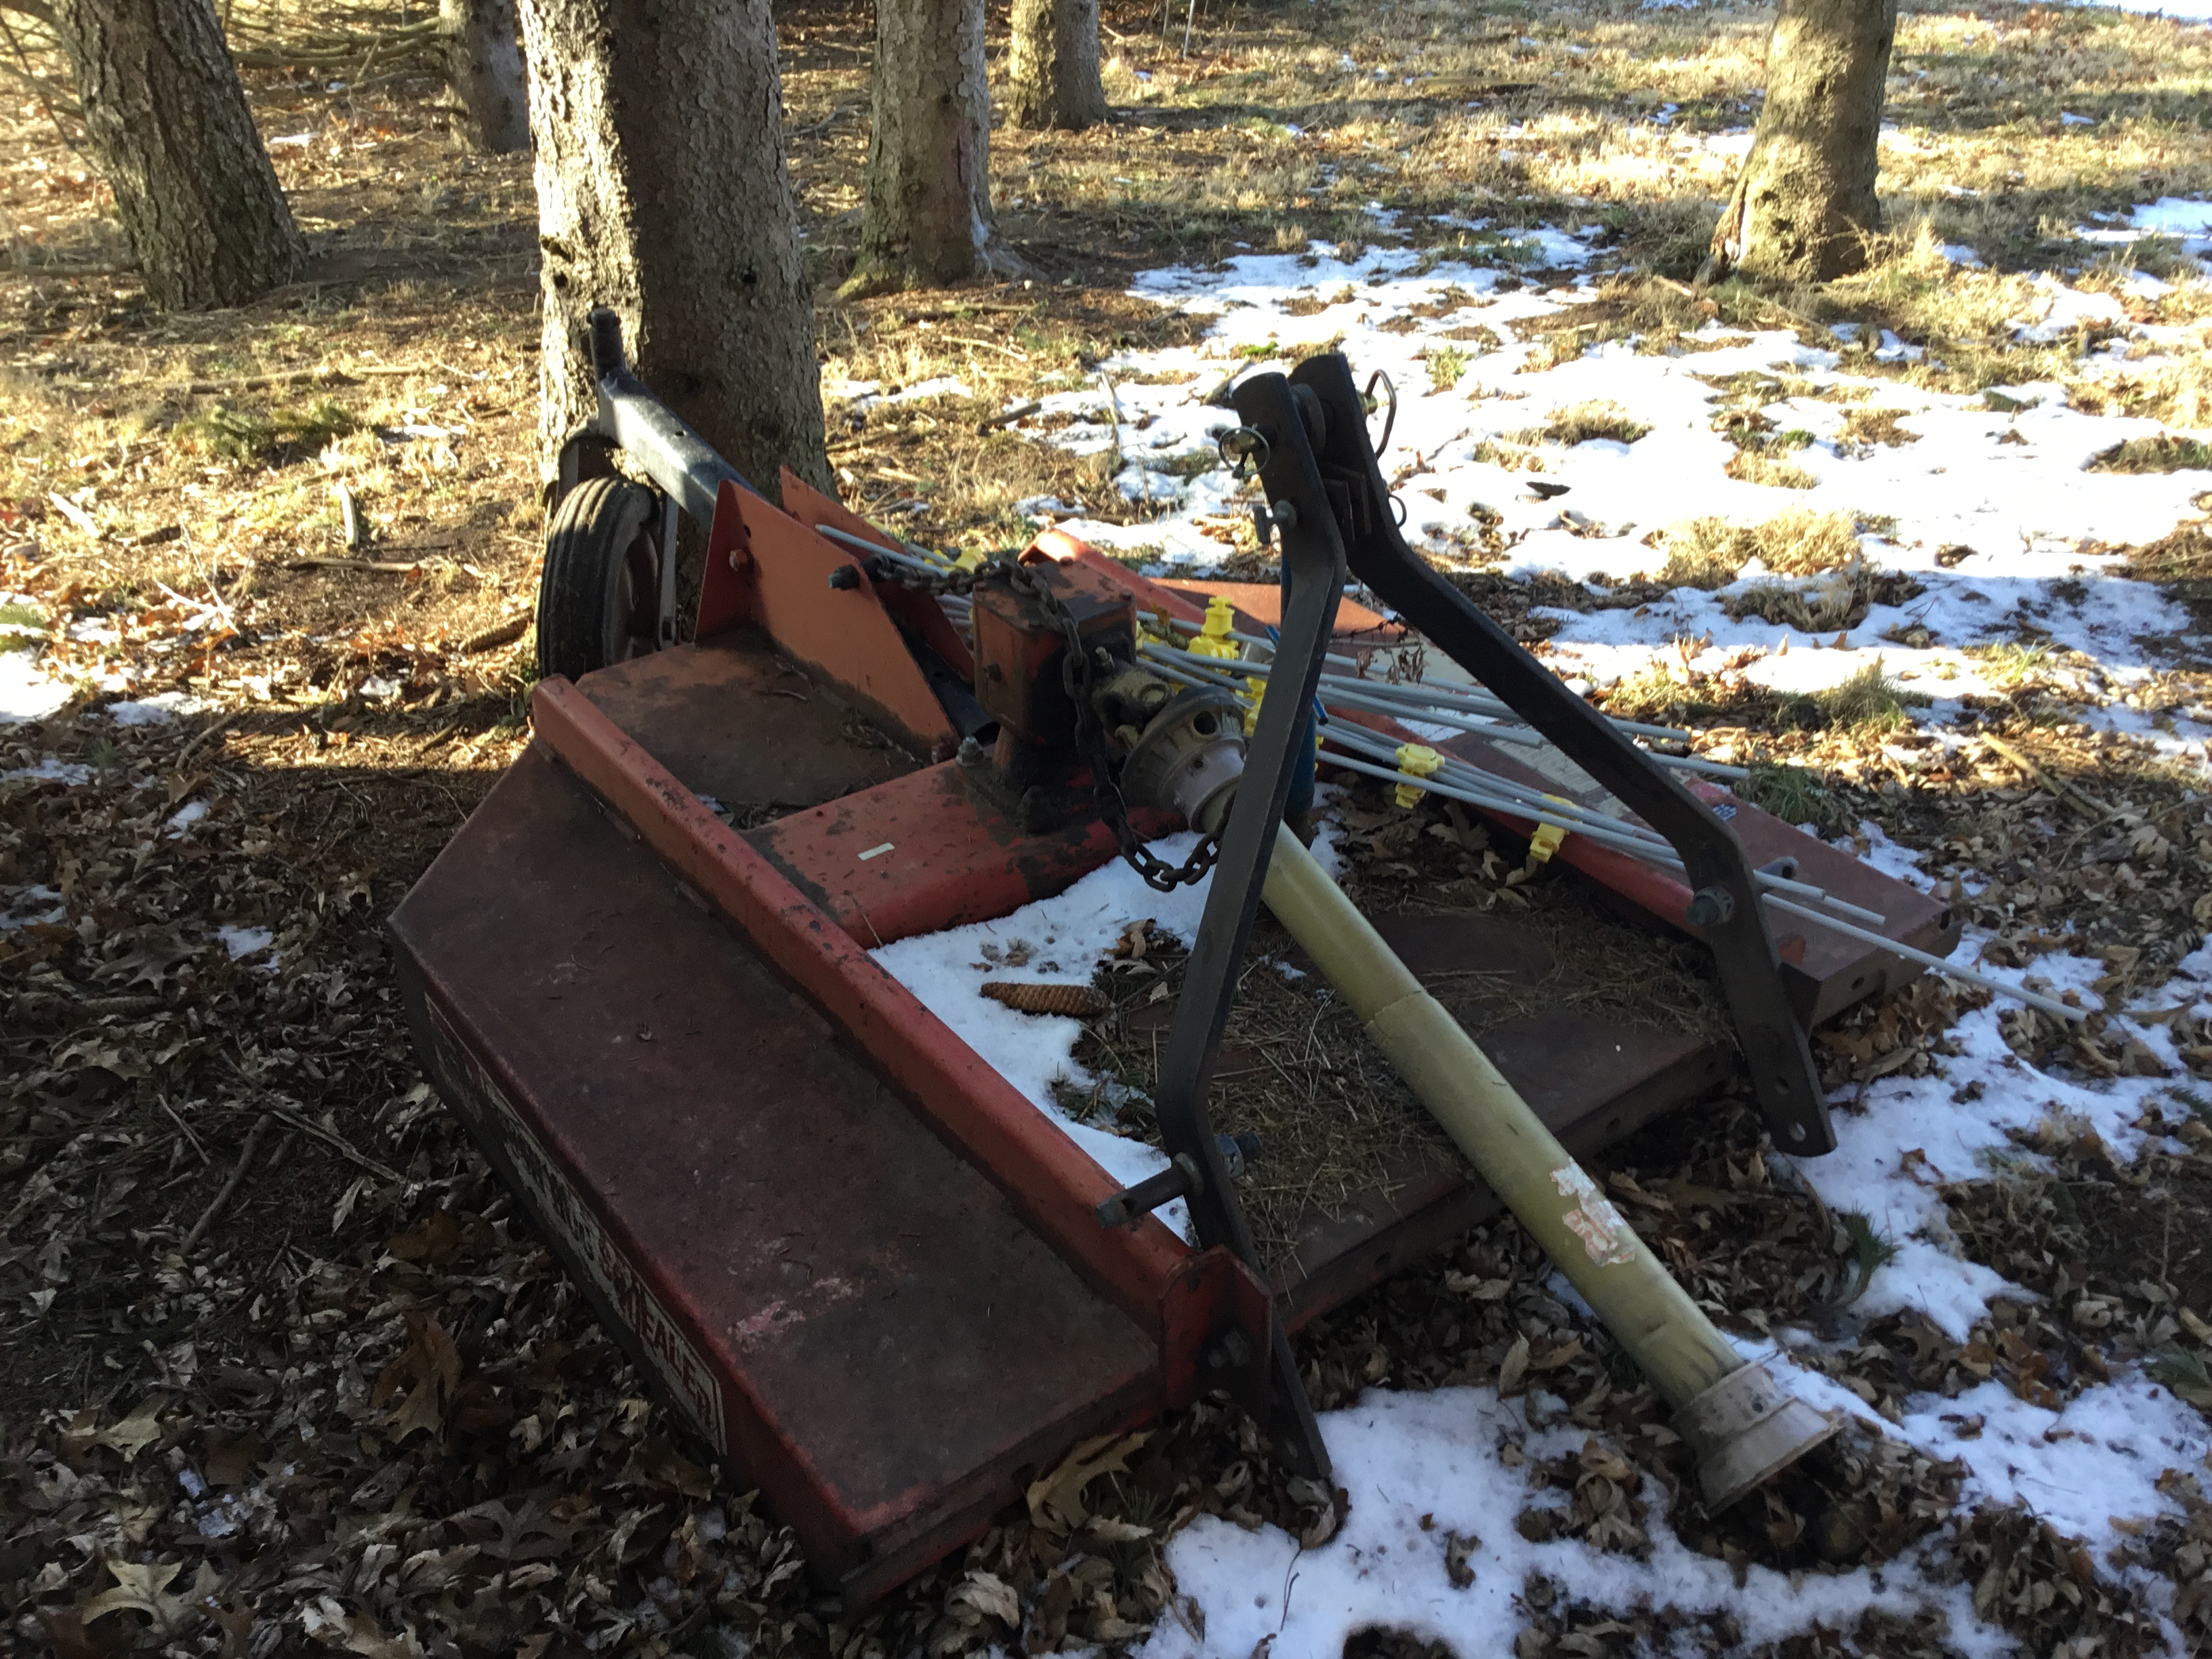 Bush Hog 3Pt. Hitch PTO Rotary Mower, 60 In. - Image 2 of 4